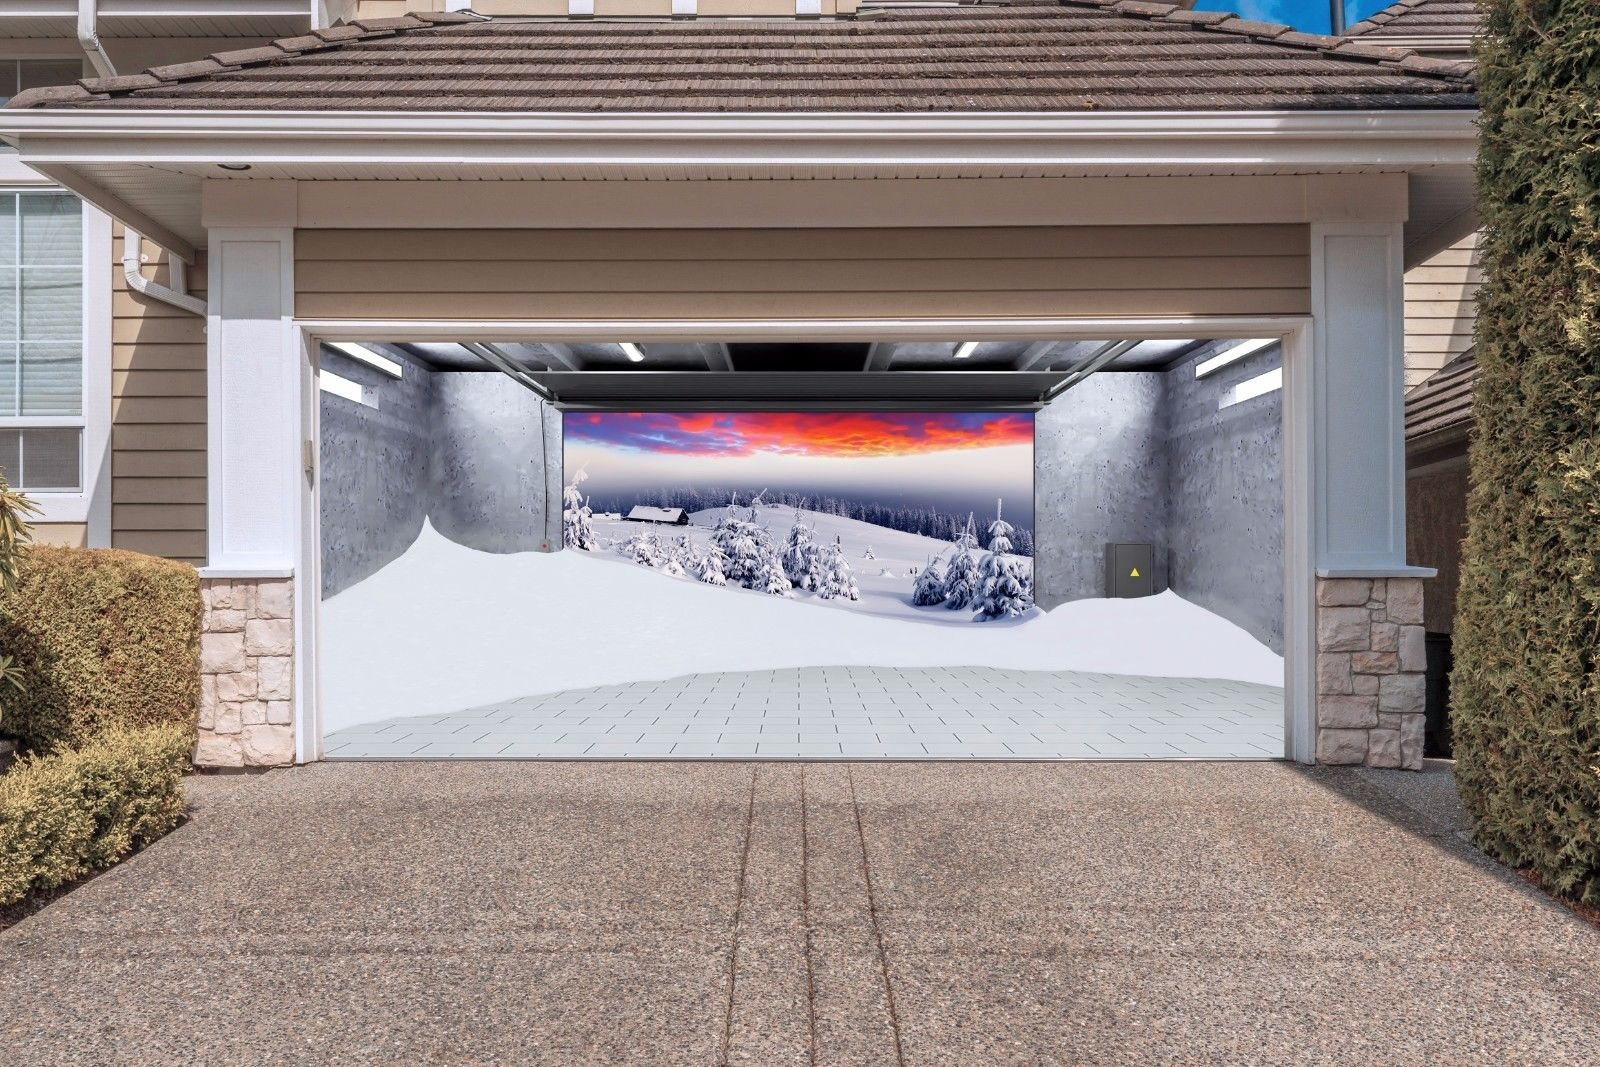 Christmas Garage Door Murals Billboard for 2 Car Garage Door Merry Christmas Decorations Full Color Print Covers Banners Outdoor Holiday size 82x188 inches House Decor DAV40